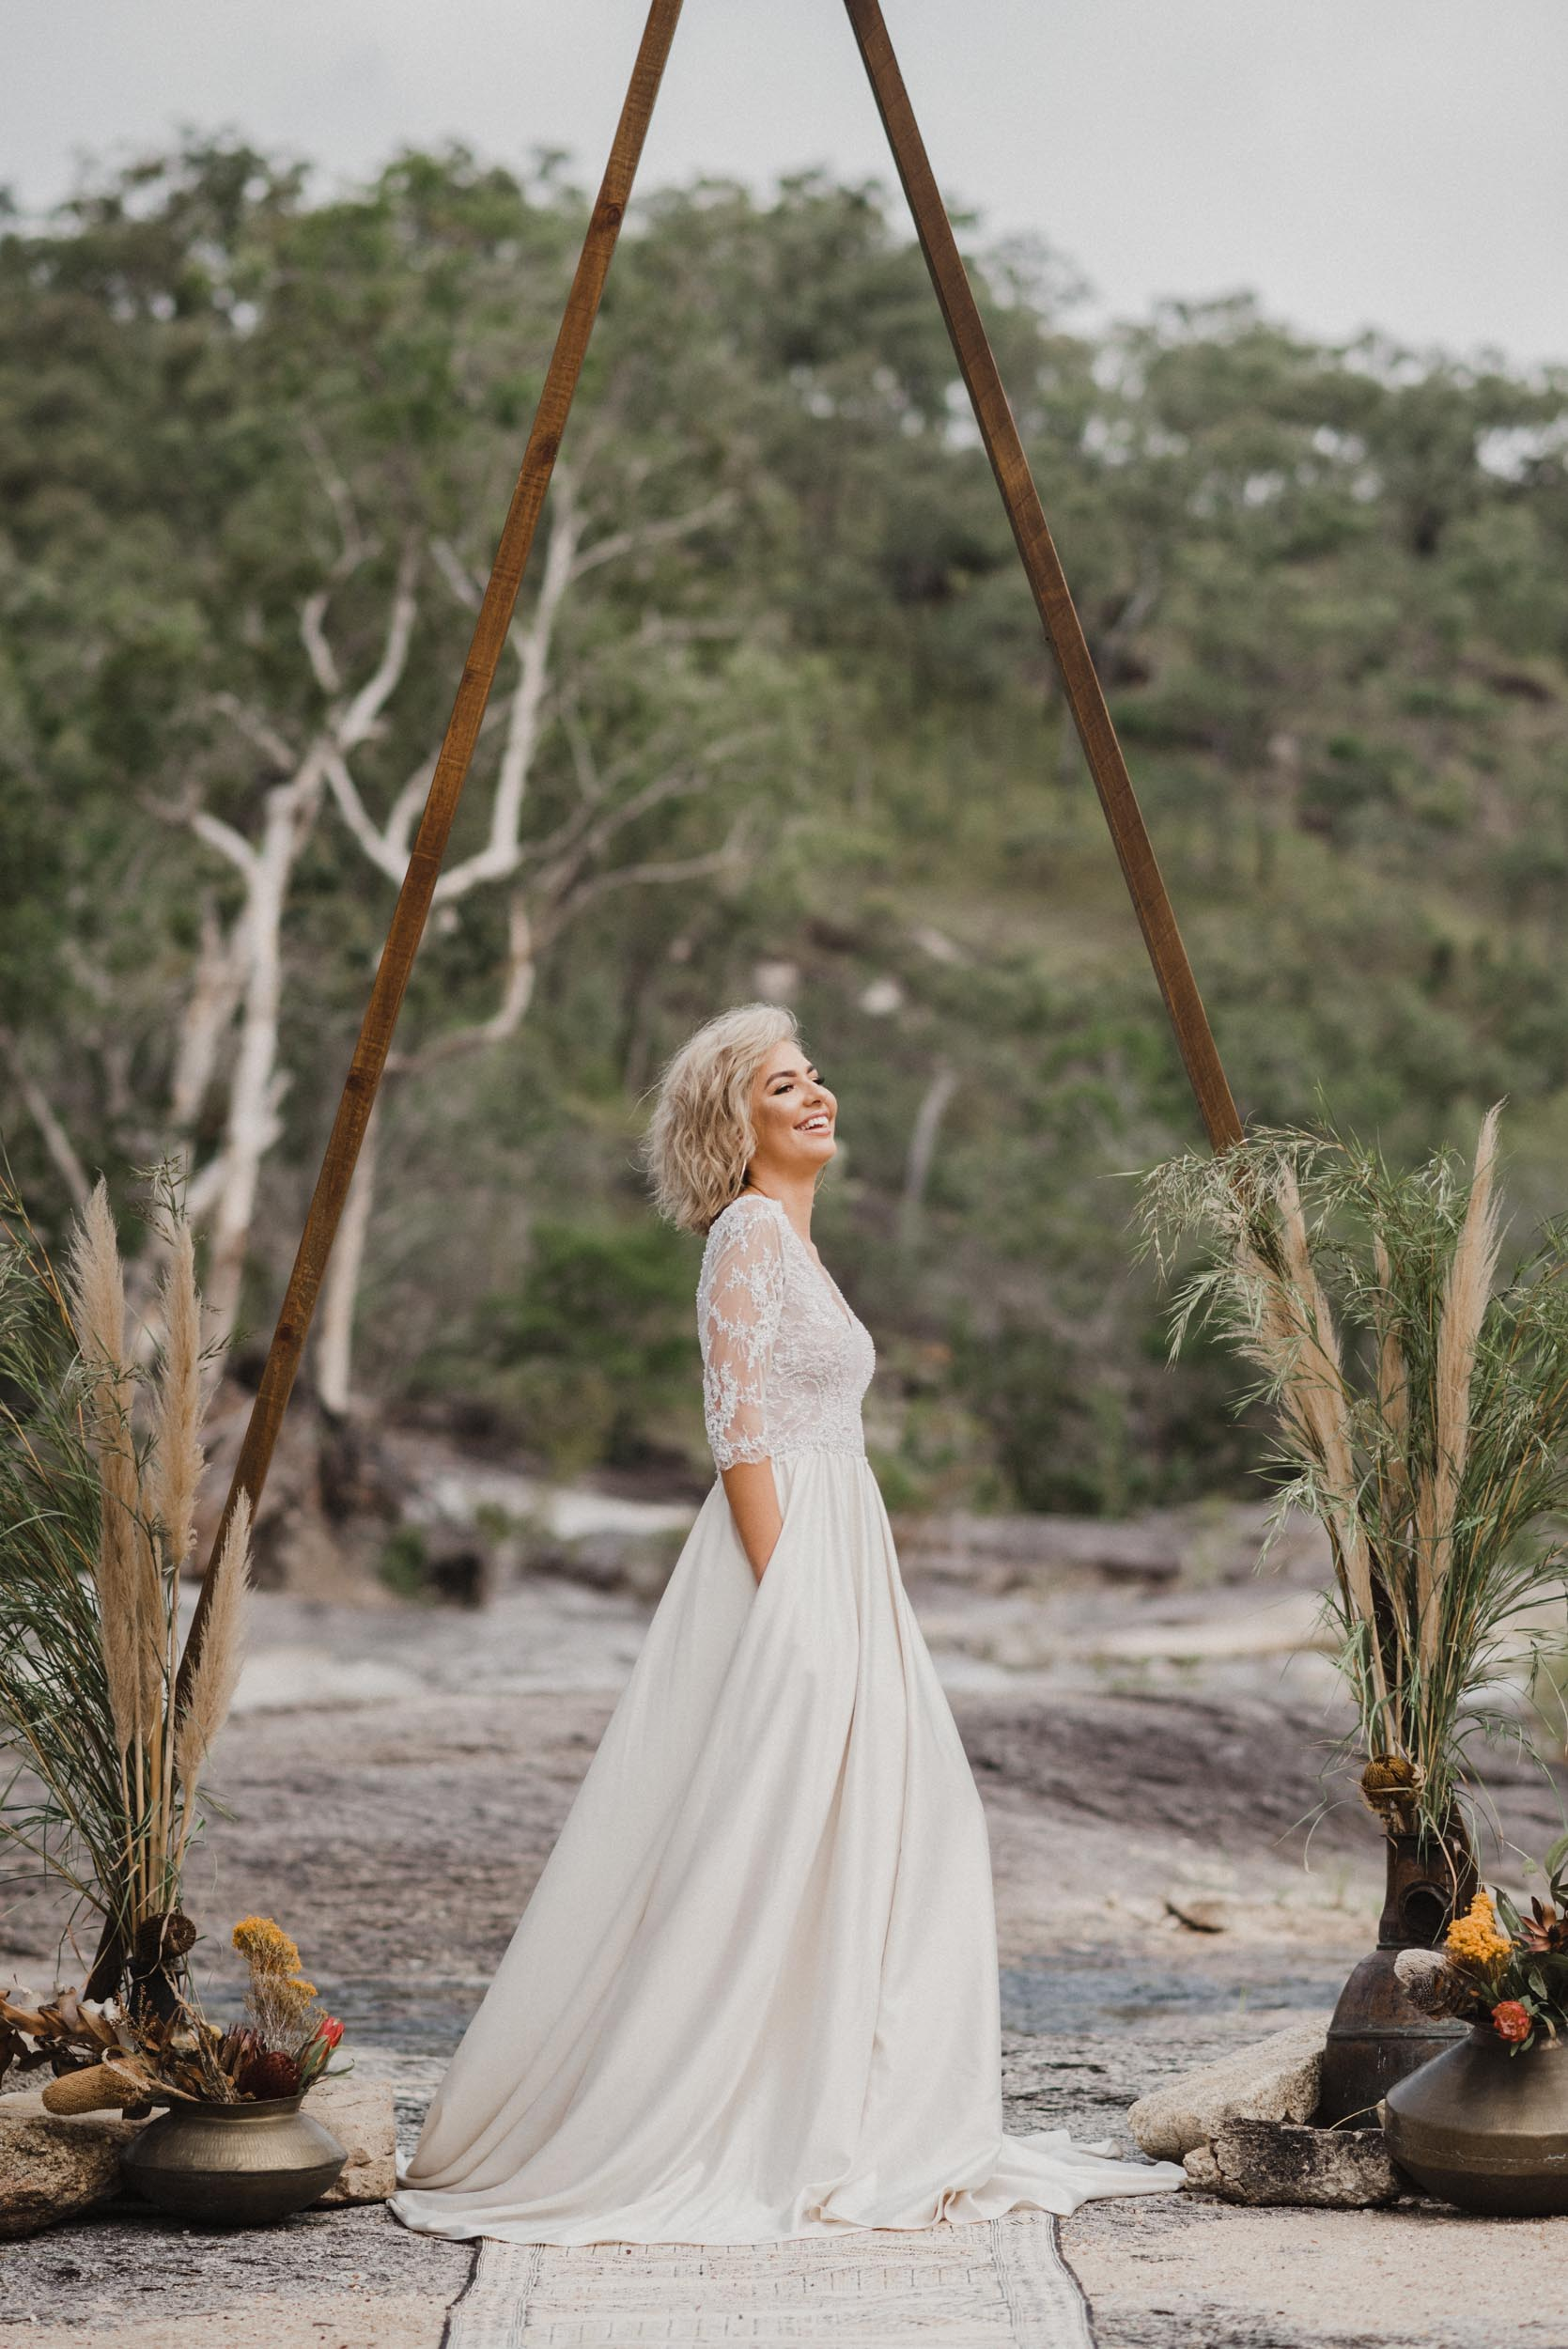 The Raw Photographer - Cairns Wedding Photographer - Brides Styled Shoot - Dress Jonovia Bridal - Hair Makeup Ideas-13.jpg